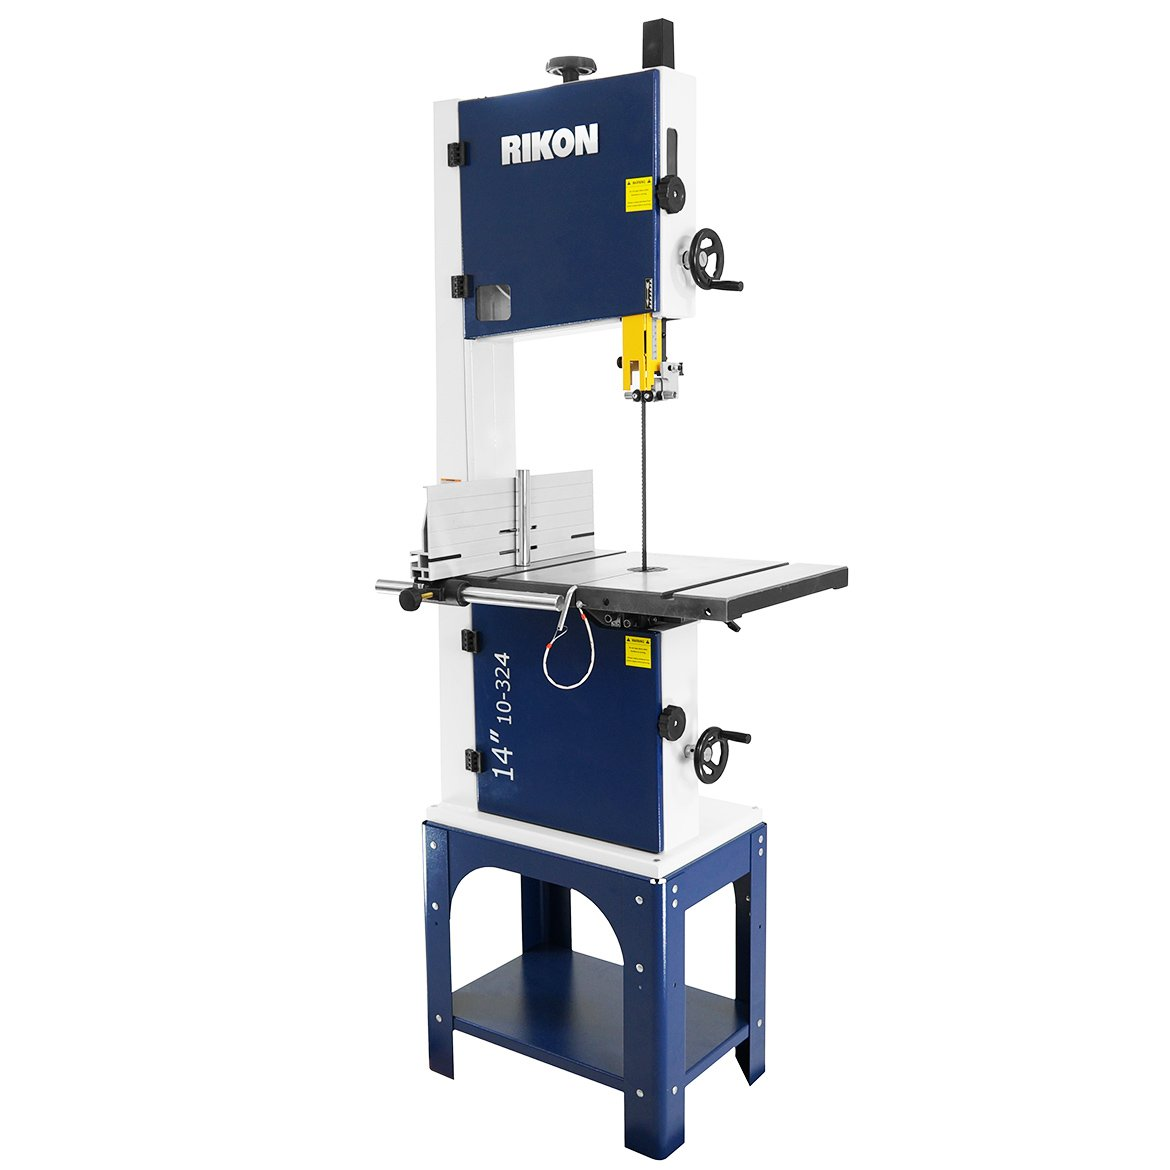 RIKON Power Tools 10-324 14'' Open Stand Bandsaw